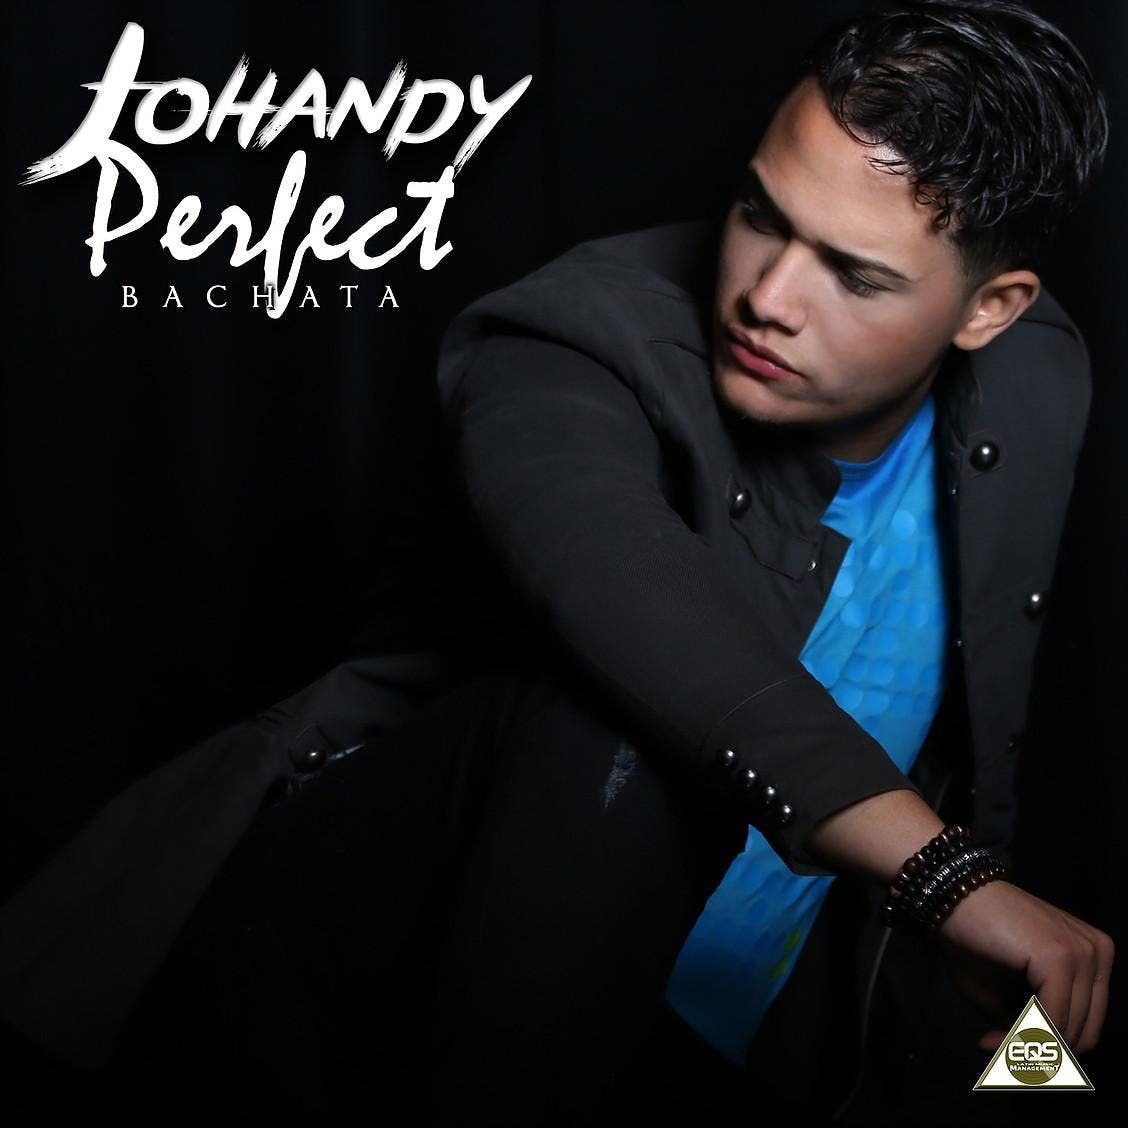 Perfect Bachata Thursday featuring Johandy & Dance Performances